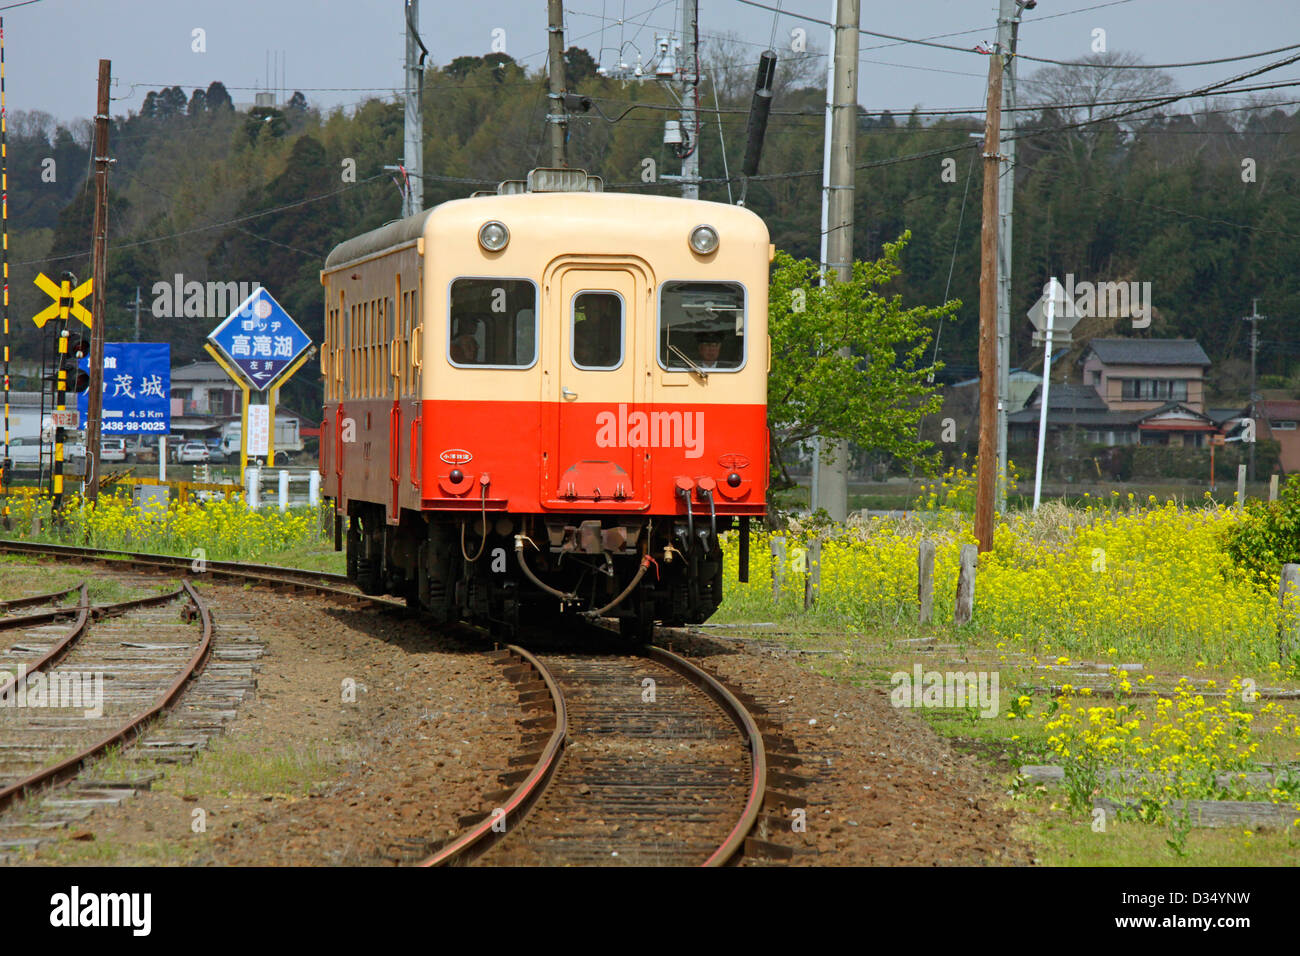 Kominato Rail Line train running Chiba Japan - Stock Image